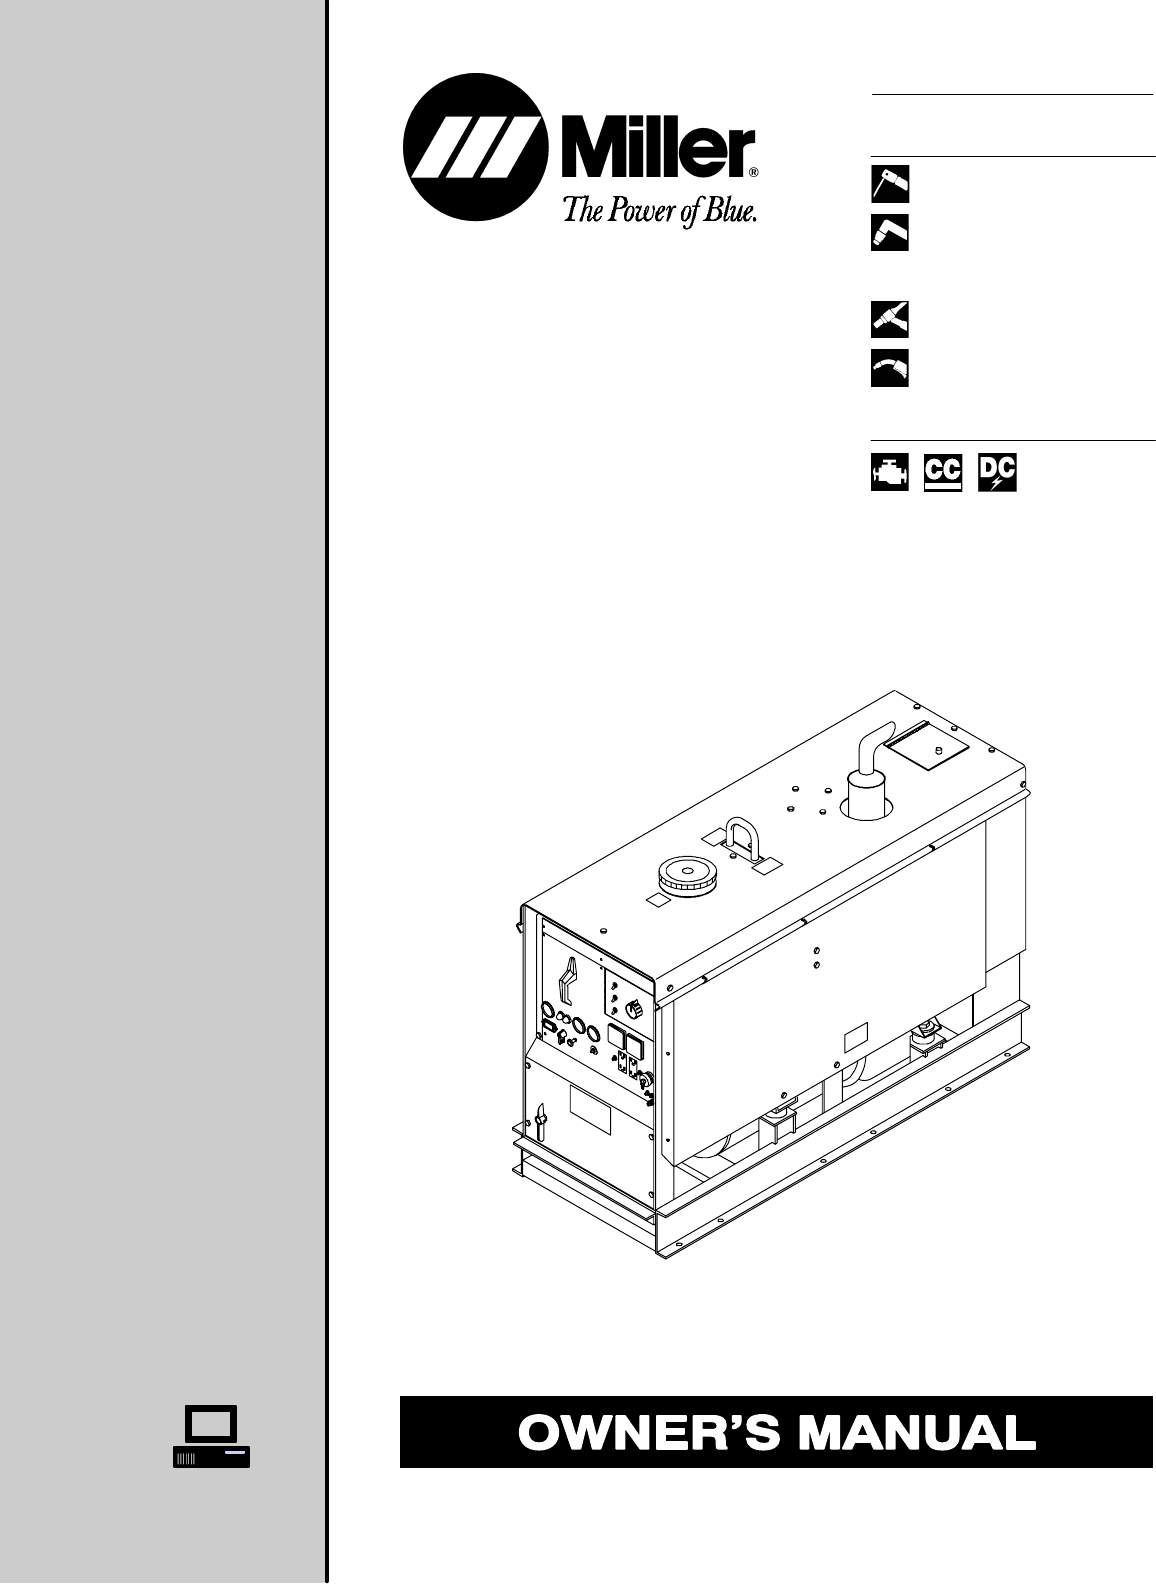 Delta Power Tools Owners Manual